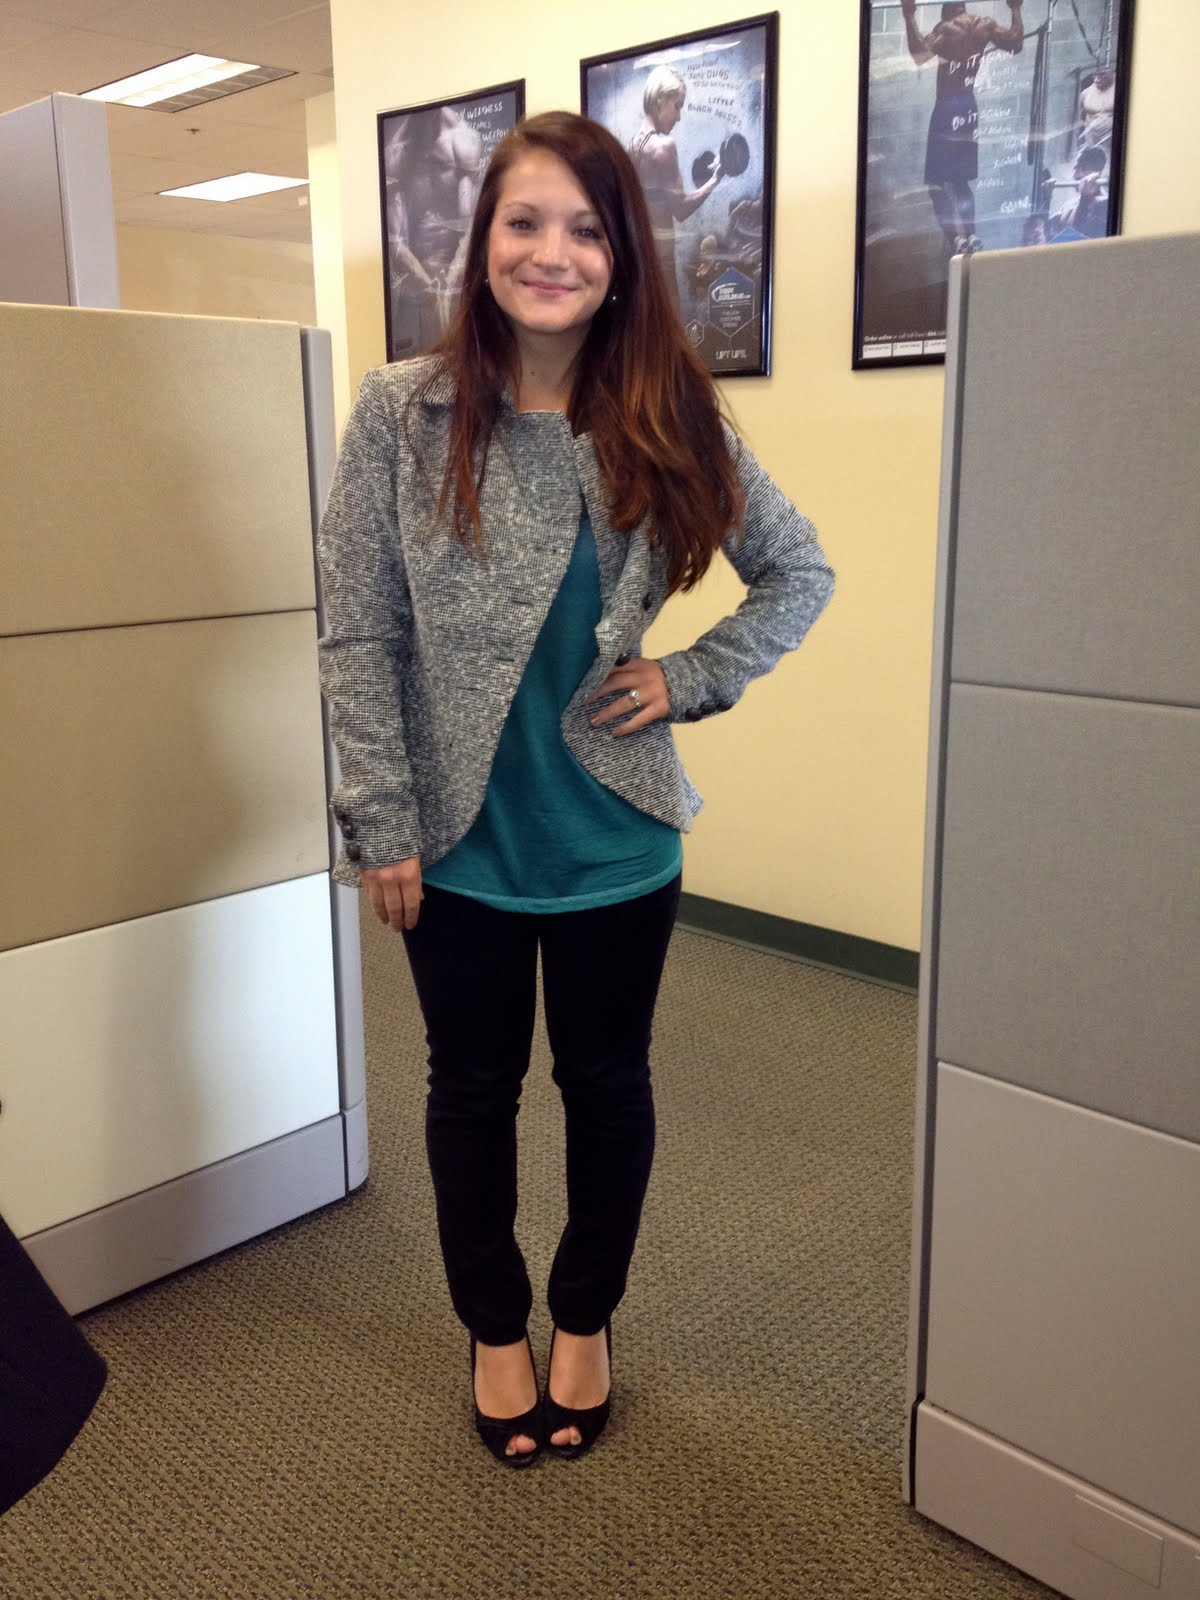 Find and save ideas about Women office wear on Pinterest. | See more ideas about Office wear for women, Office wear dresses and Office wear. young professional women, office style inspiration, corporate work wear, fall fashion trends, interview style advice and tips, what to wear, classic black skirt suit, sheath dress, ann taylor, power.